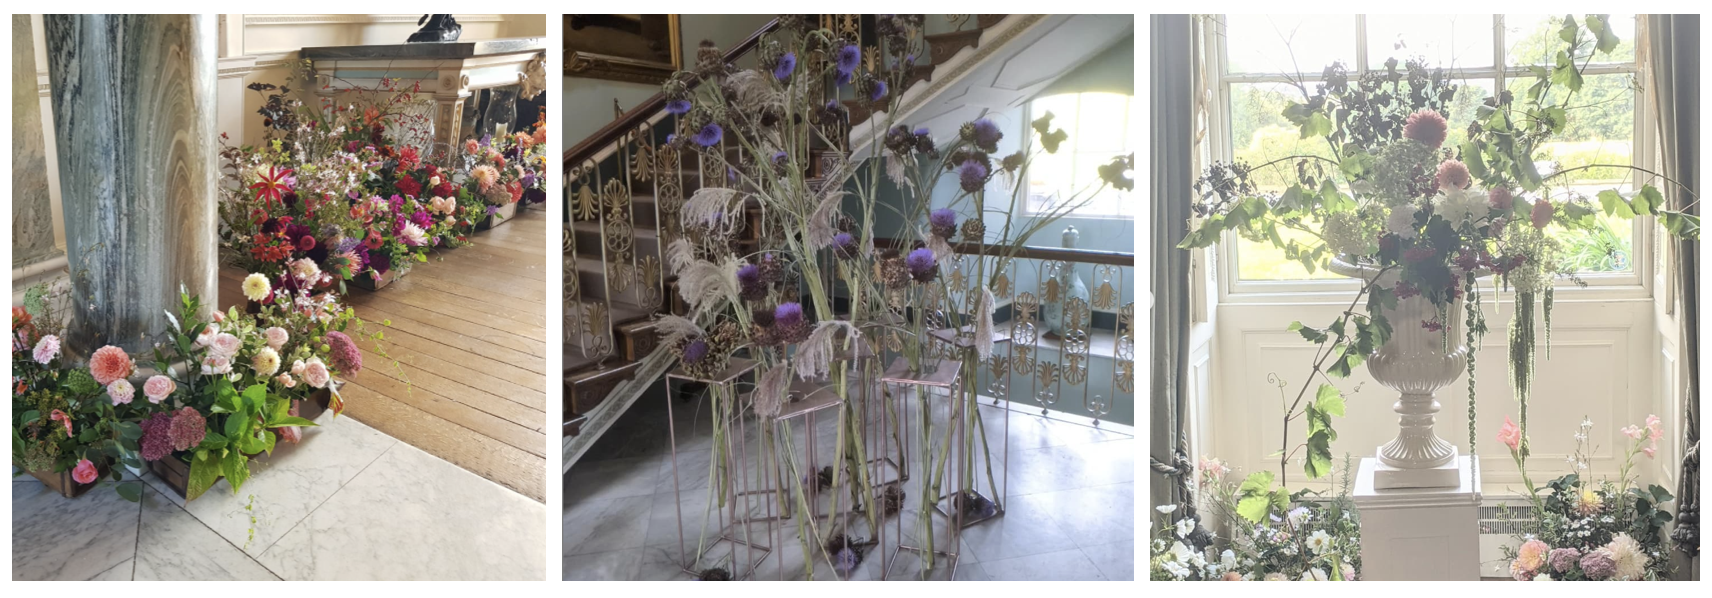 Some of the beautiful floral exhibits created by FFtF members at the Harrogate Autumn Show 2021